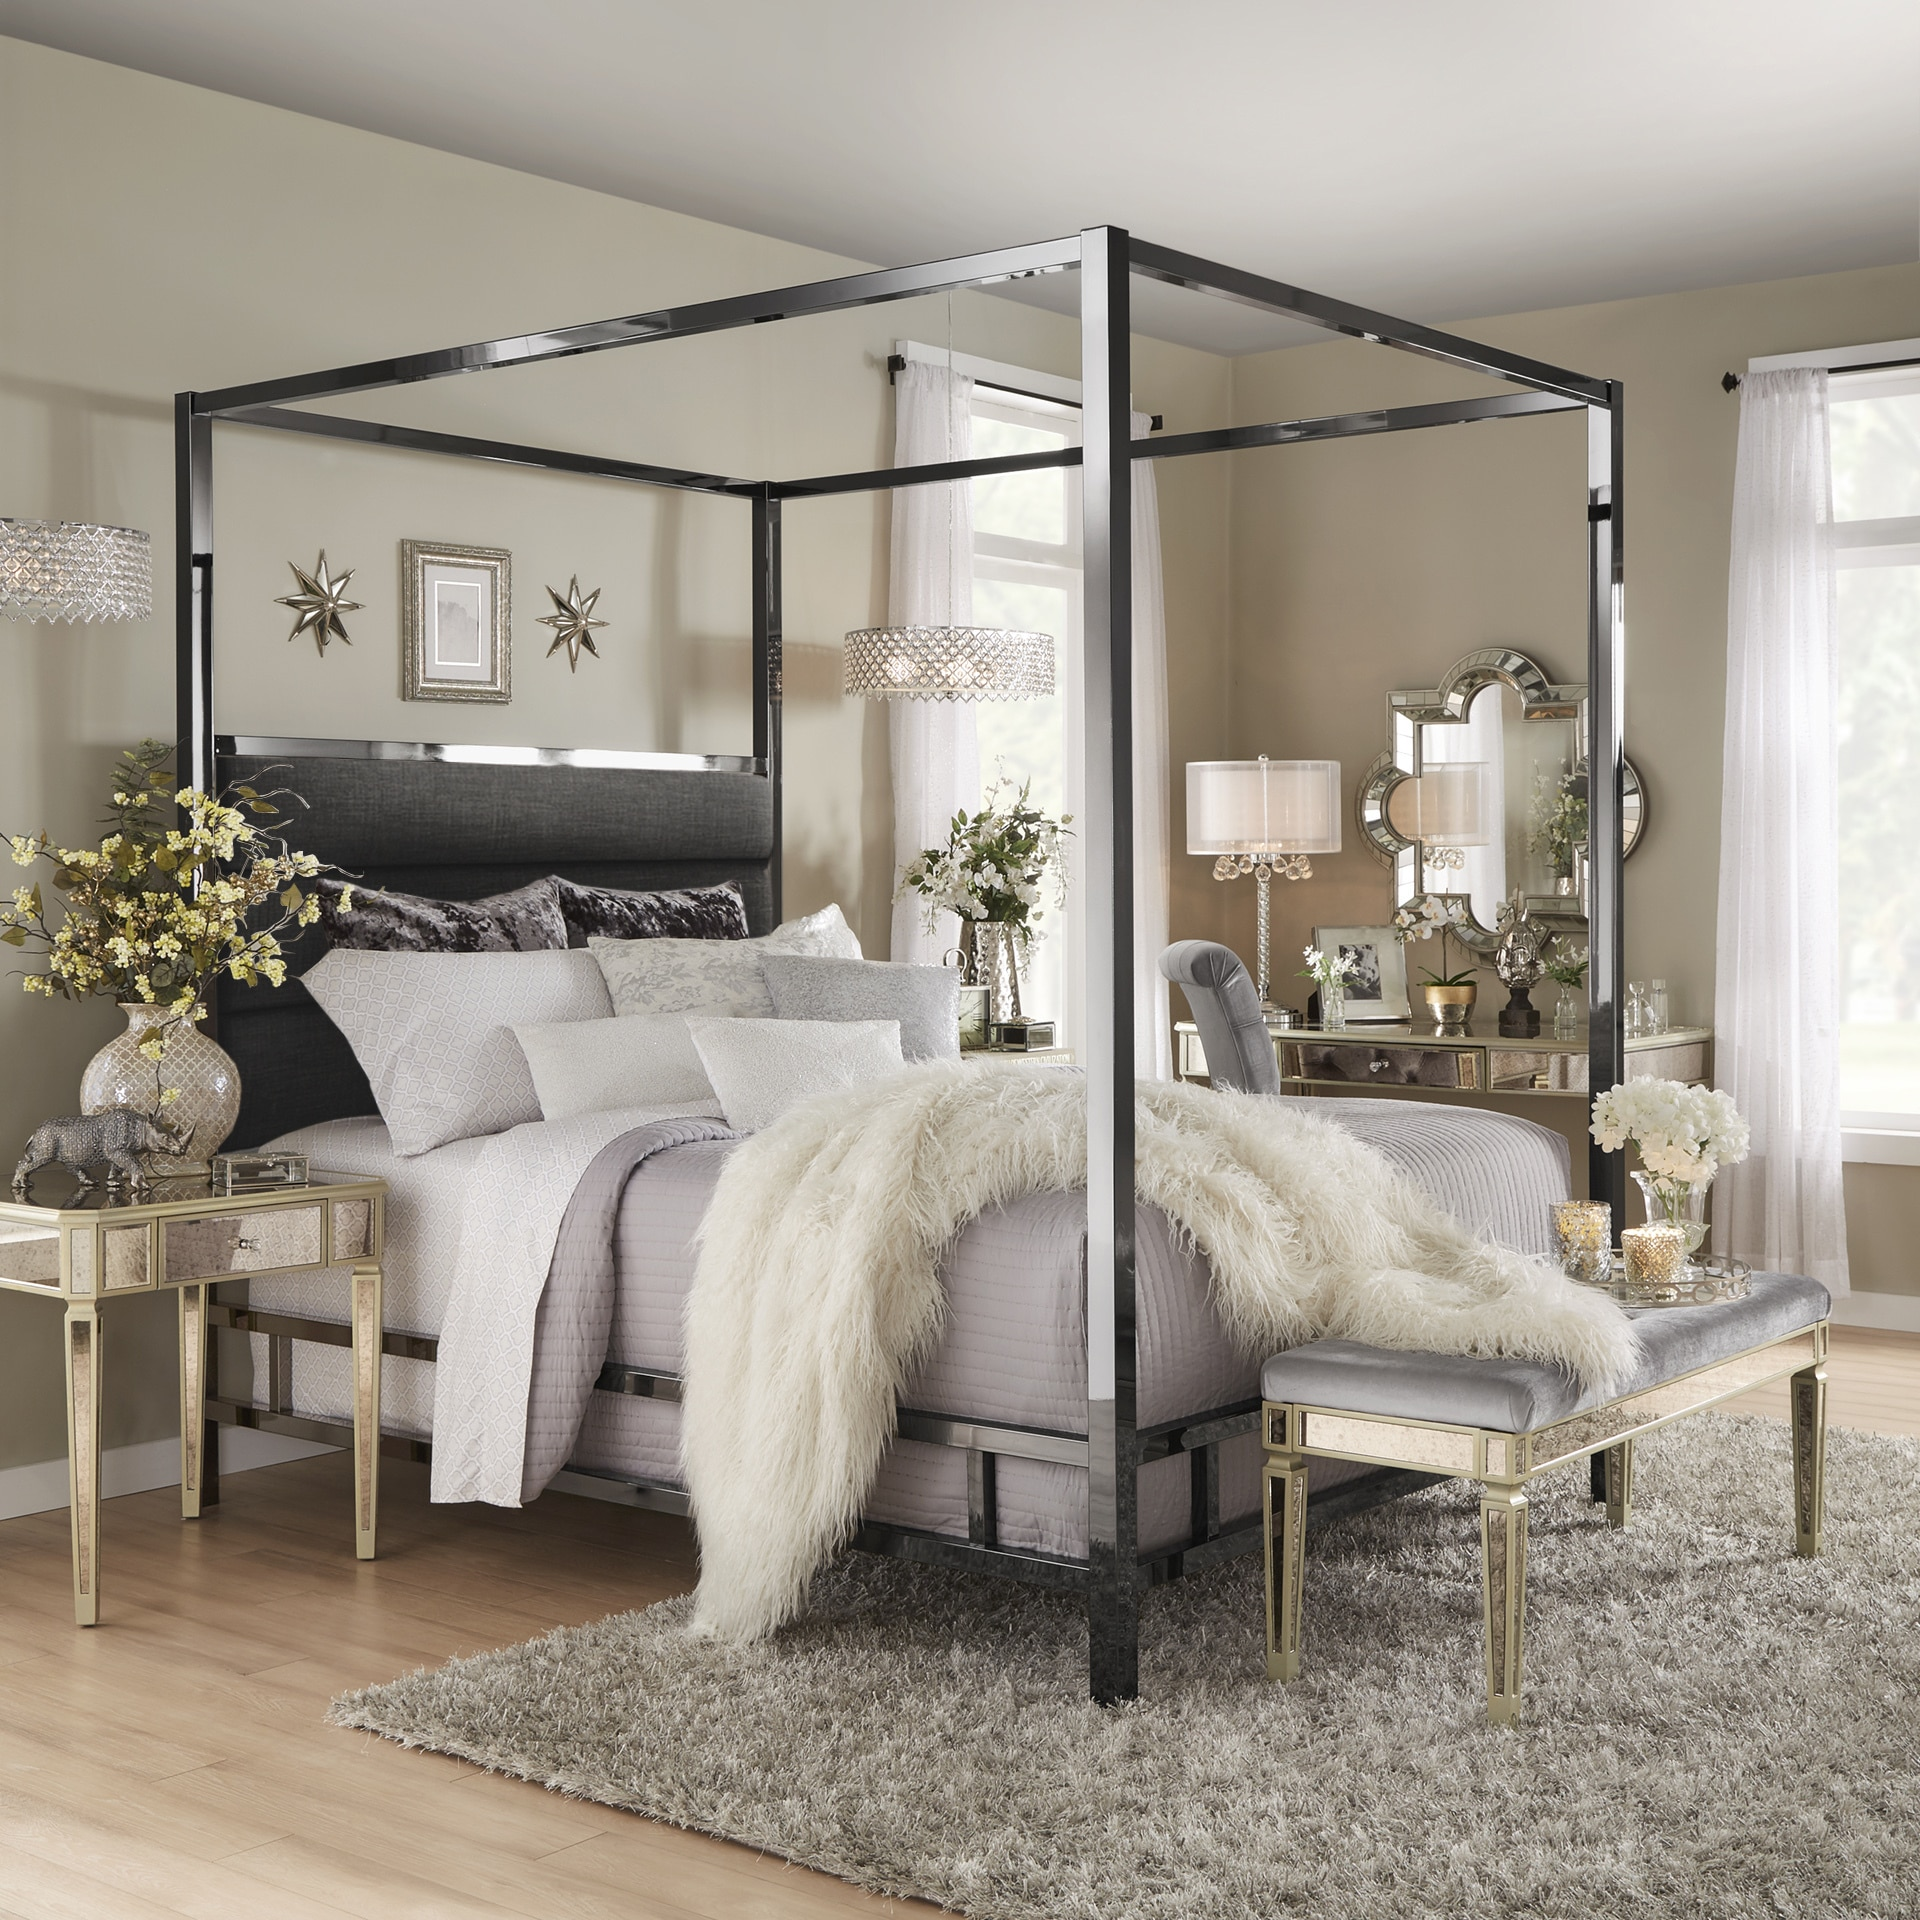 Solivita Black Nickel Metal Canopy Bed With Horizontal Panel Headboard By Inspire Q Bold On Free Shipping Today 18805859